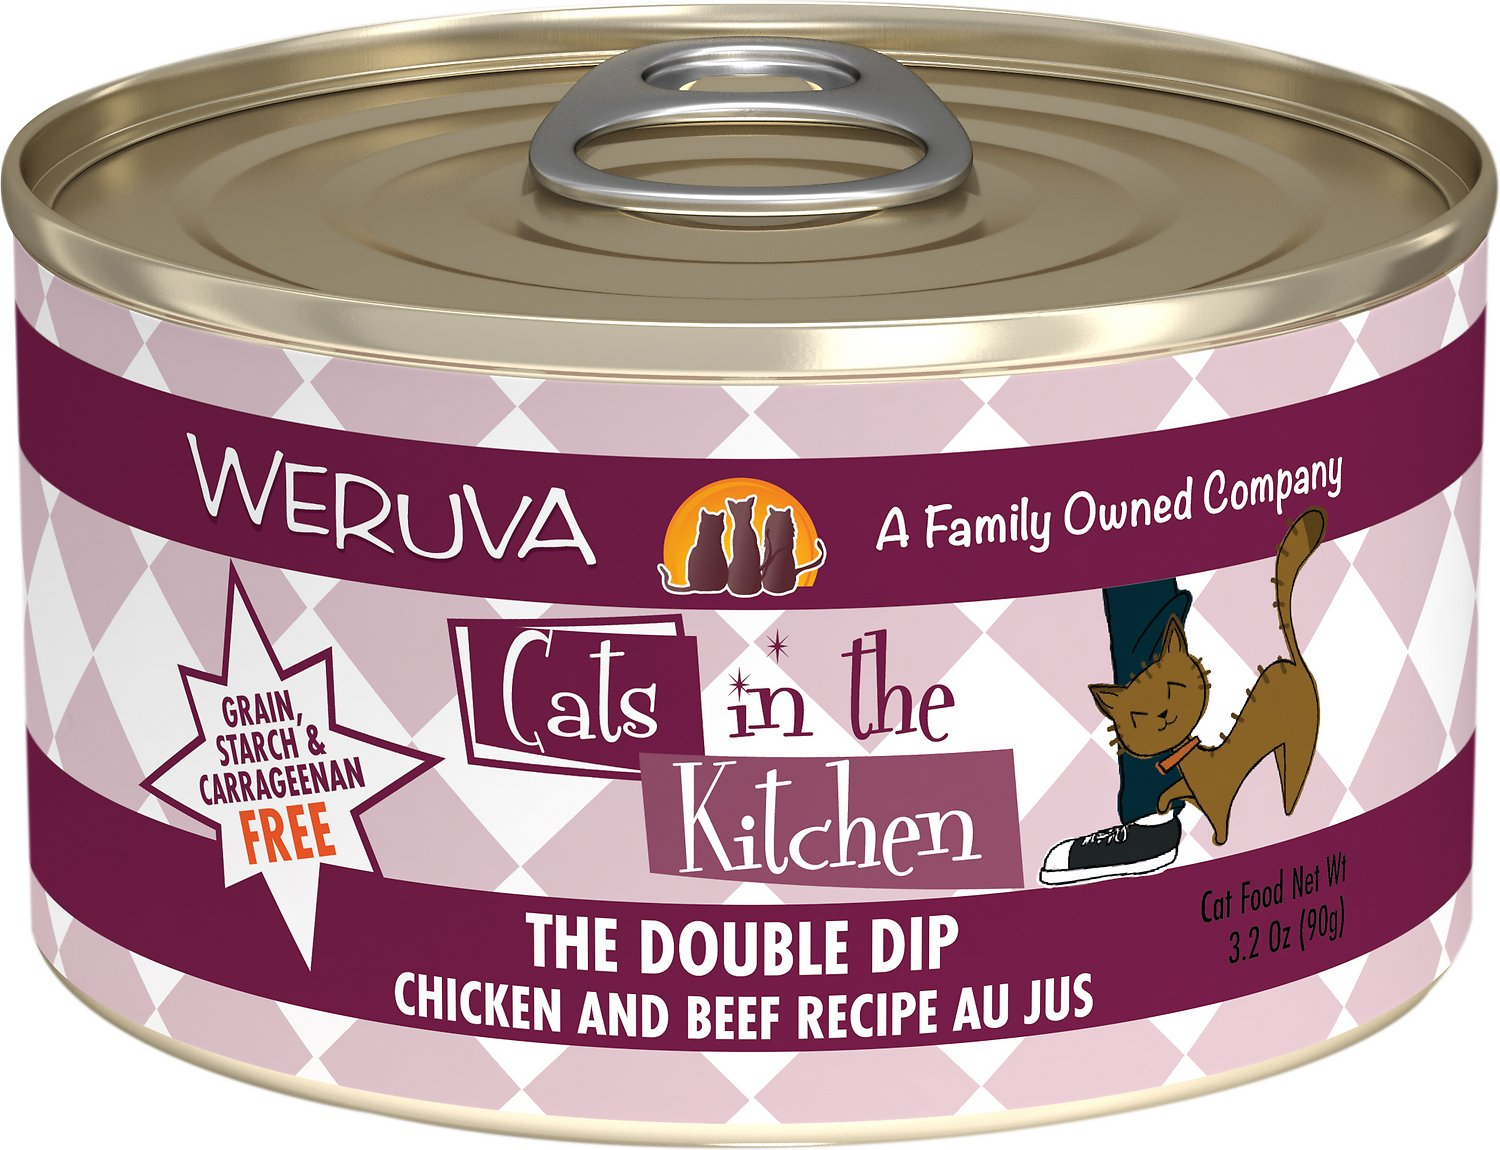 Weruva Cats in the Kitchen The Double Dip Chicken & Beef Au Jus Grain-Free Wet Cat Food, 3.2-oz